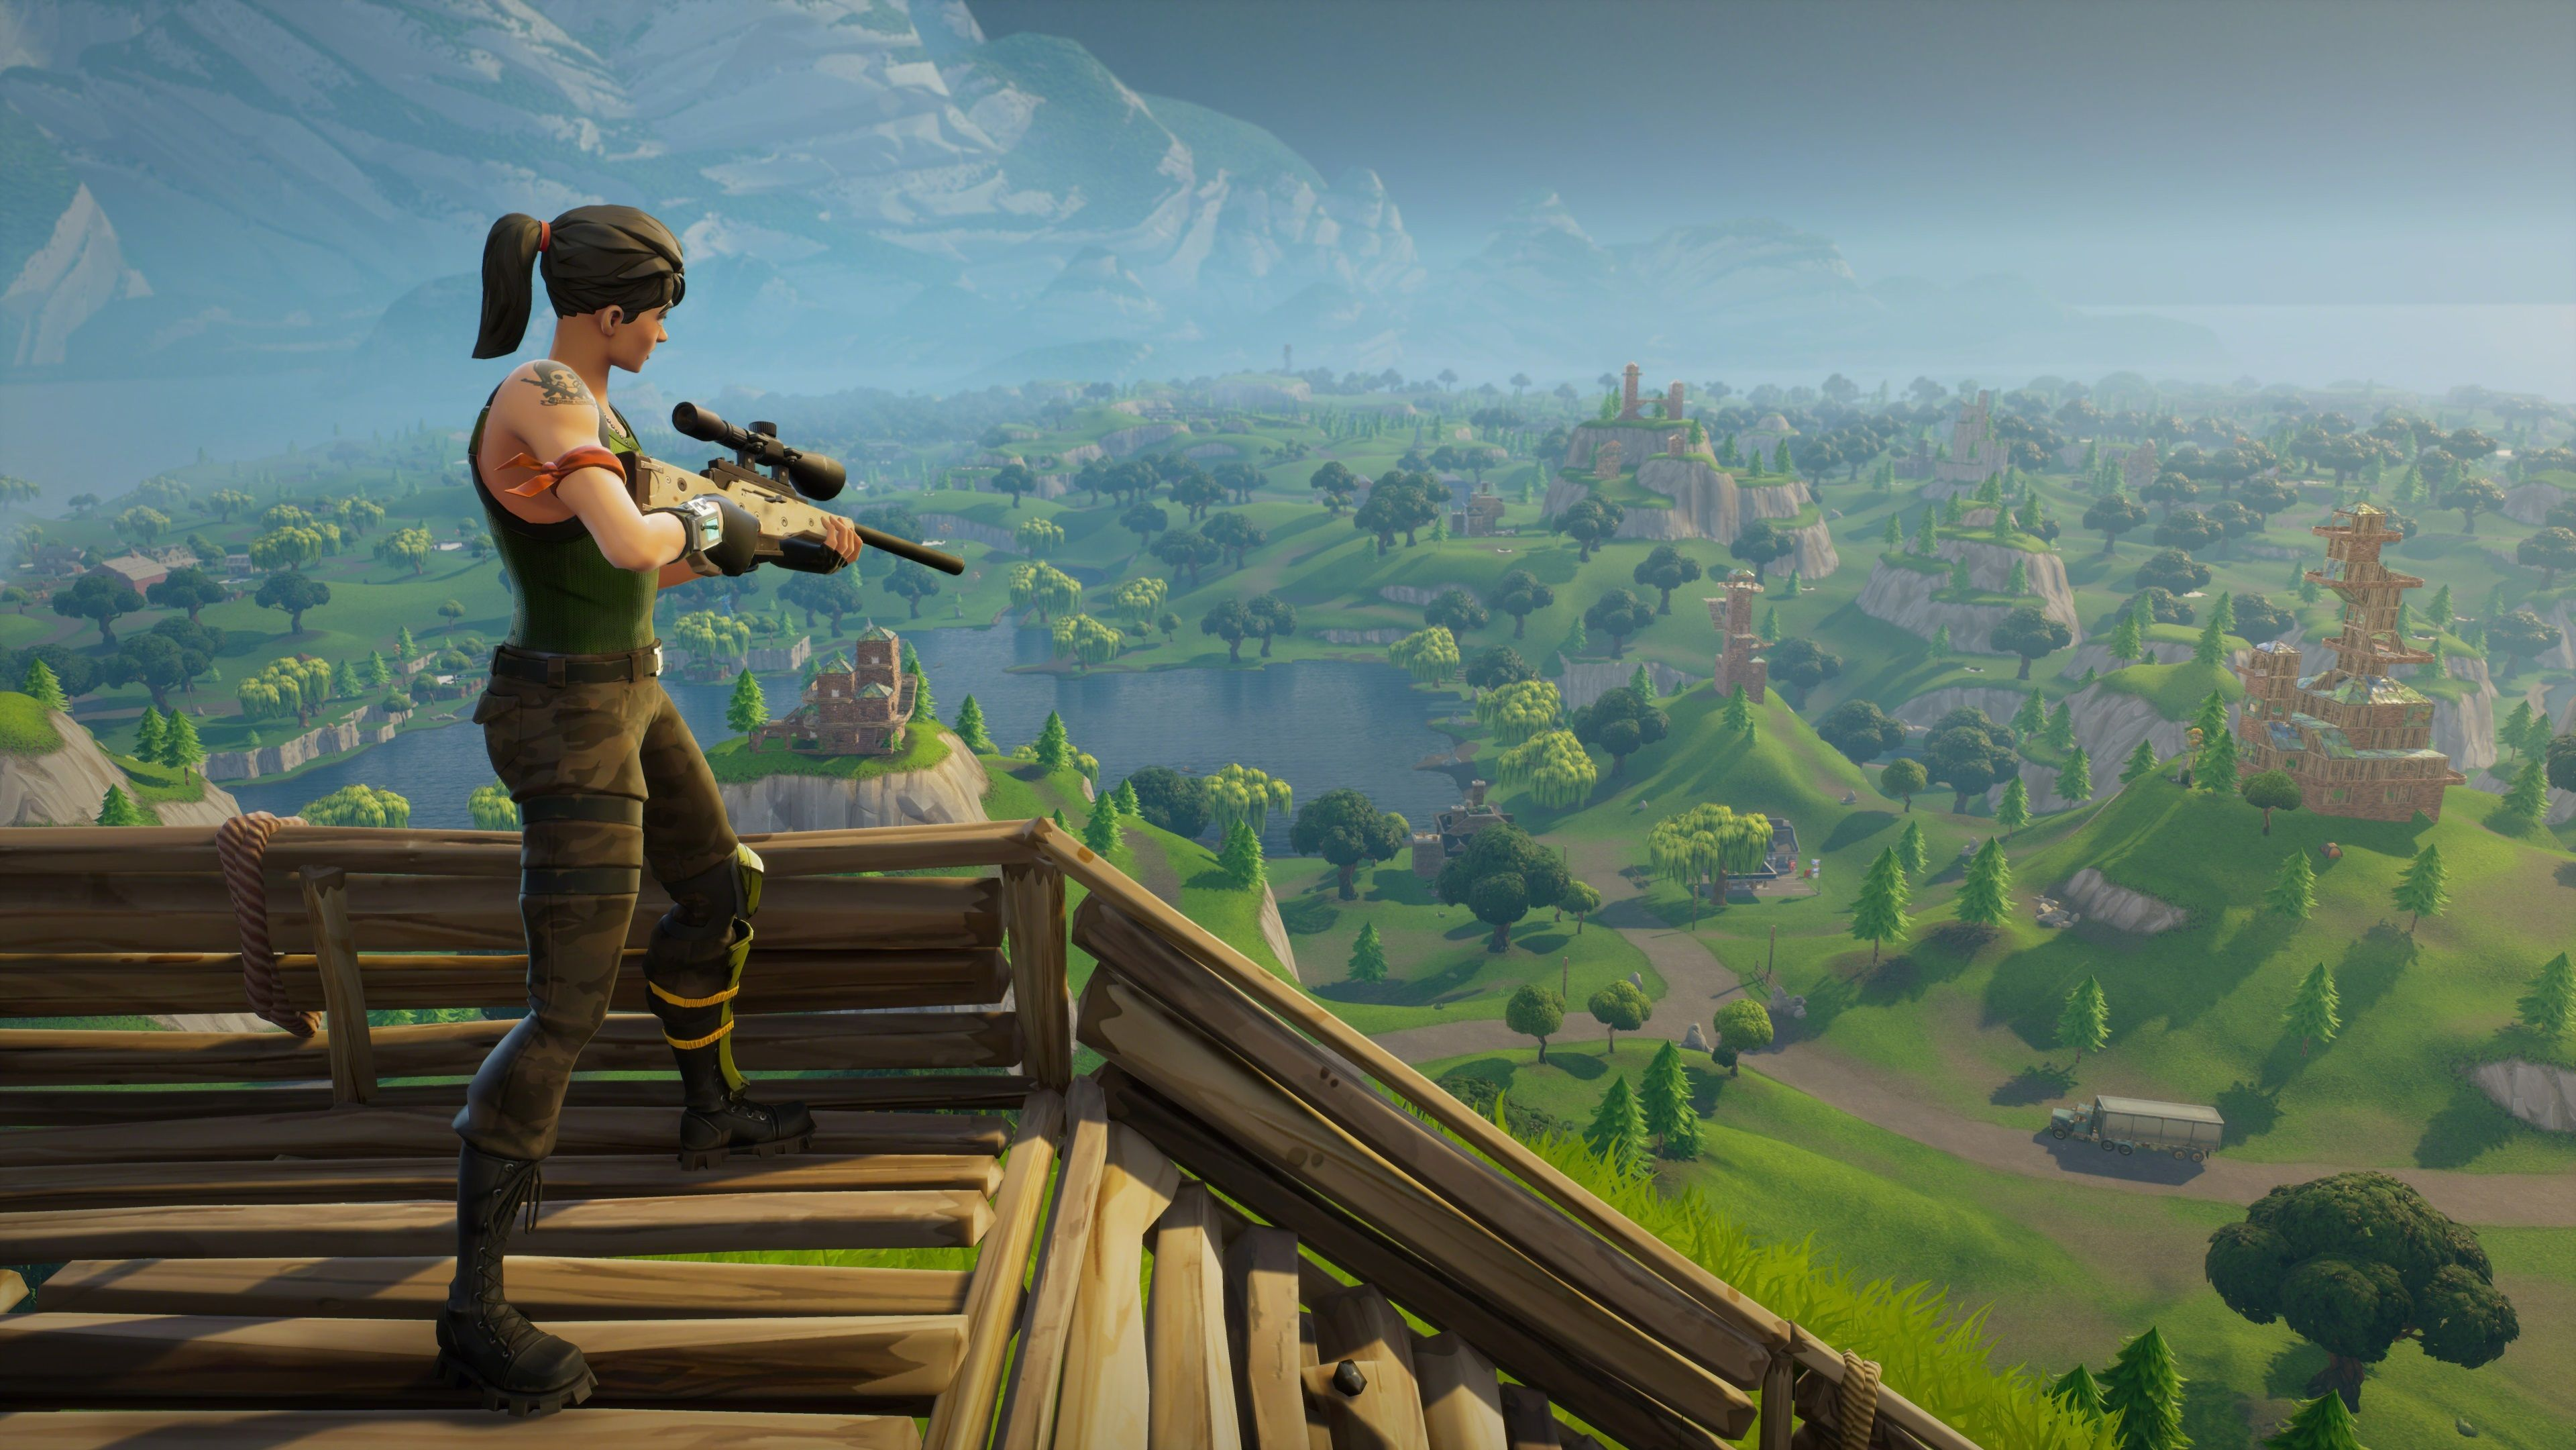 3840x2161 3840x2161 fortnite 4k free wallpaper for desktop | wallpapers and ...